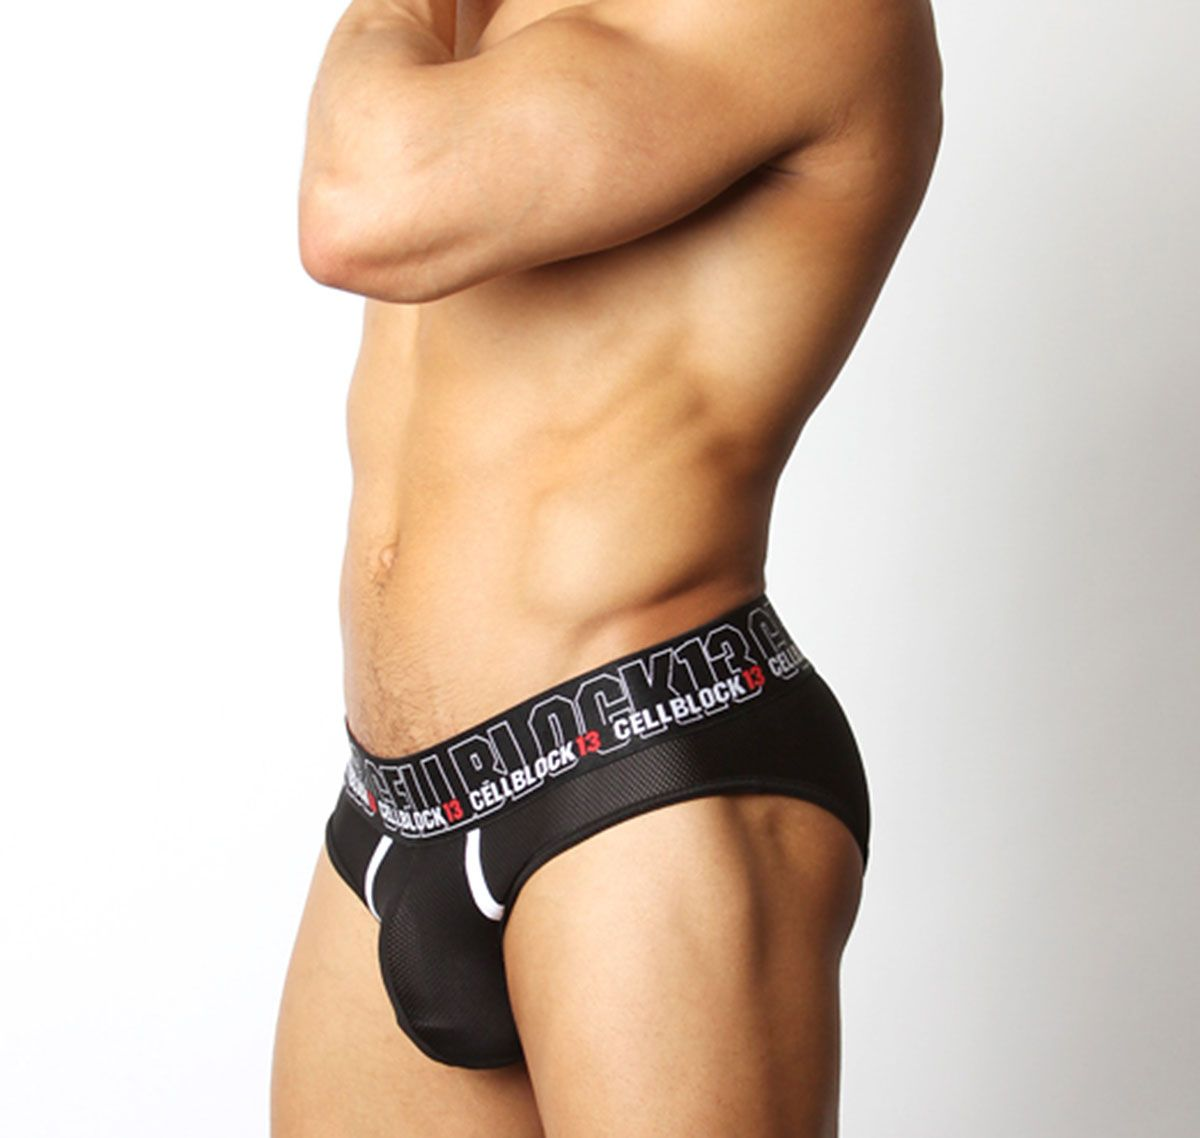 Cellblock 13 Slip BACK ALLEY BRIEF, negro